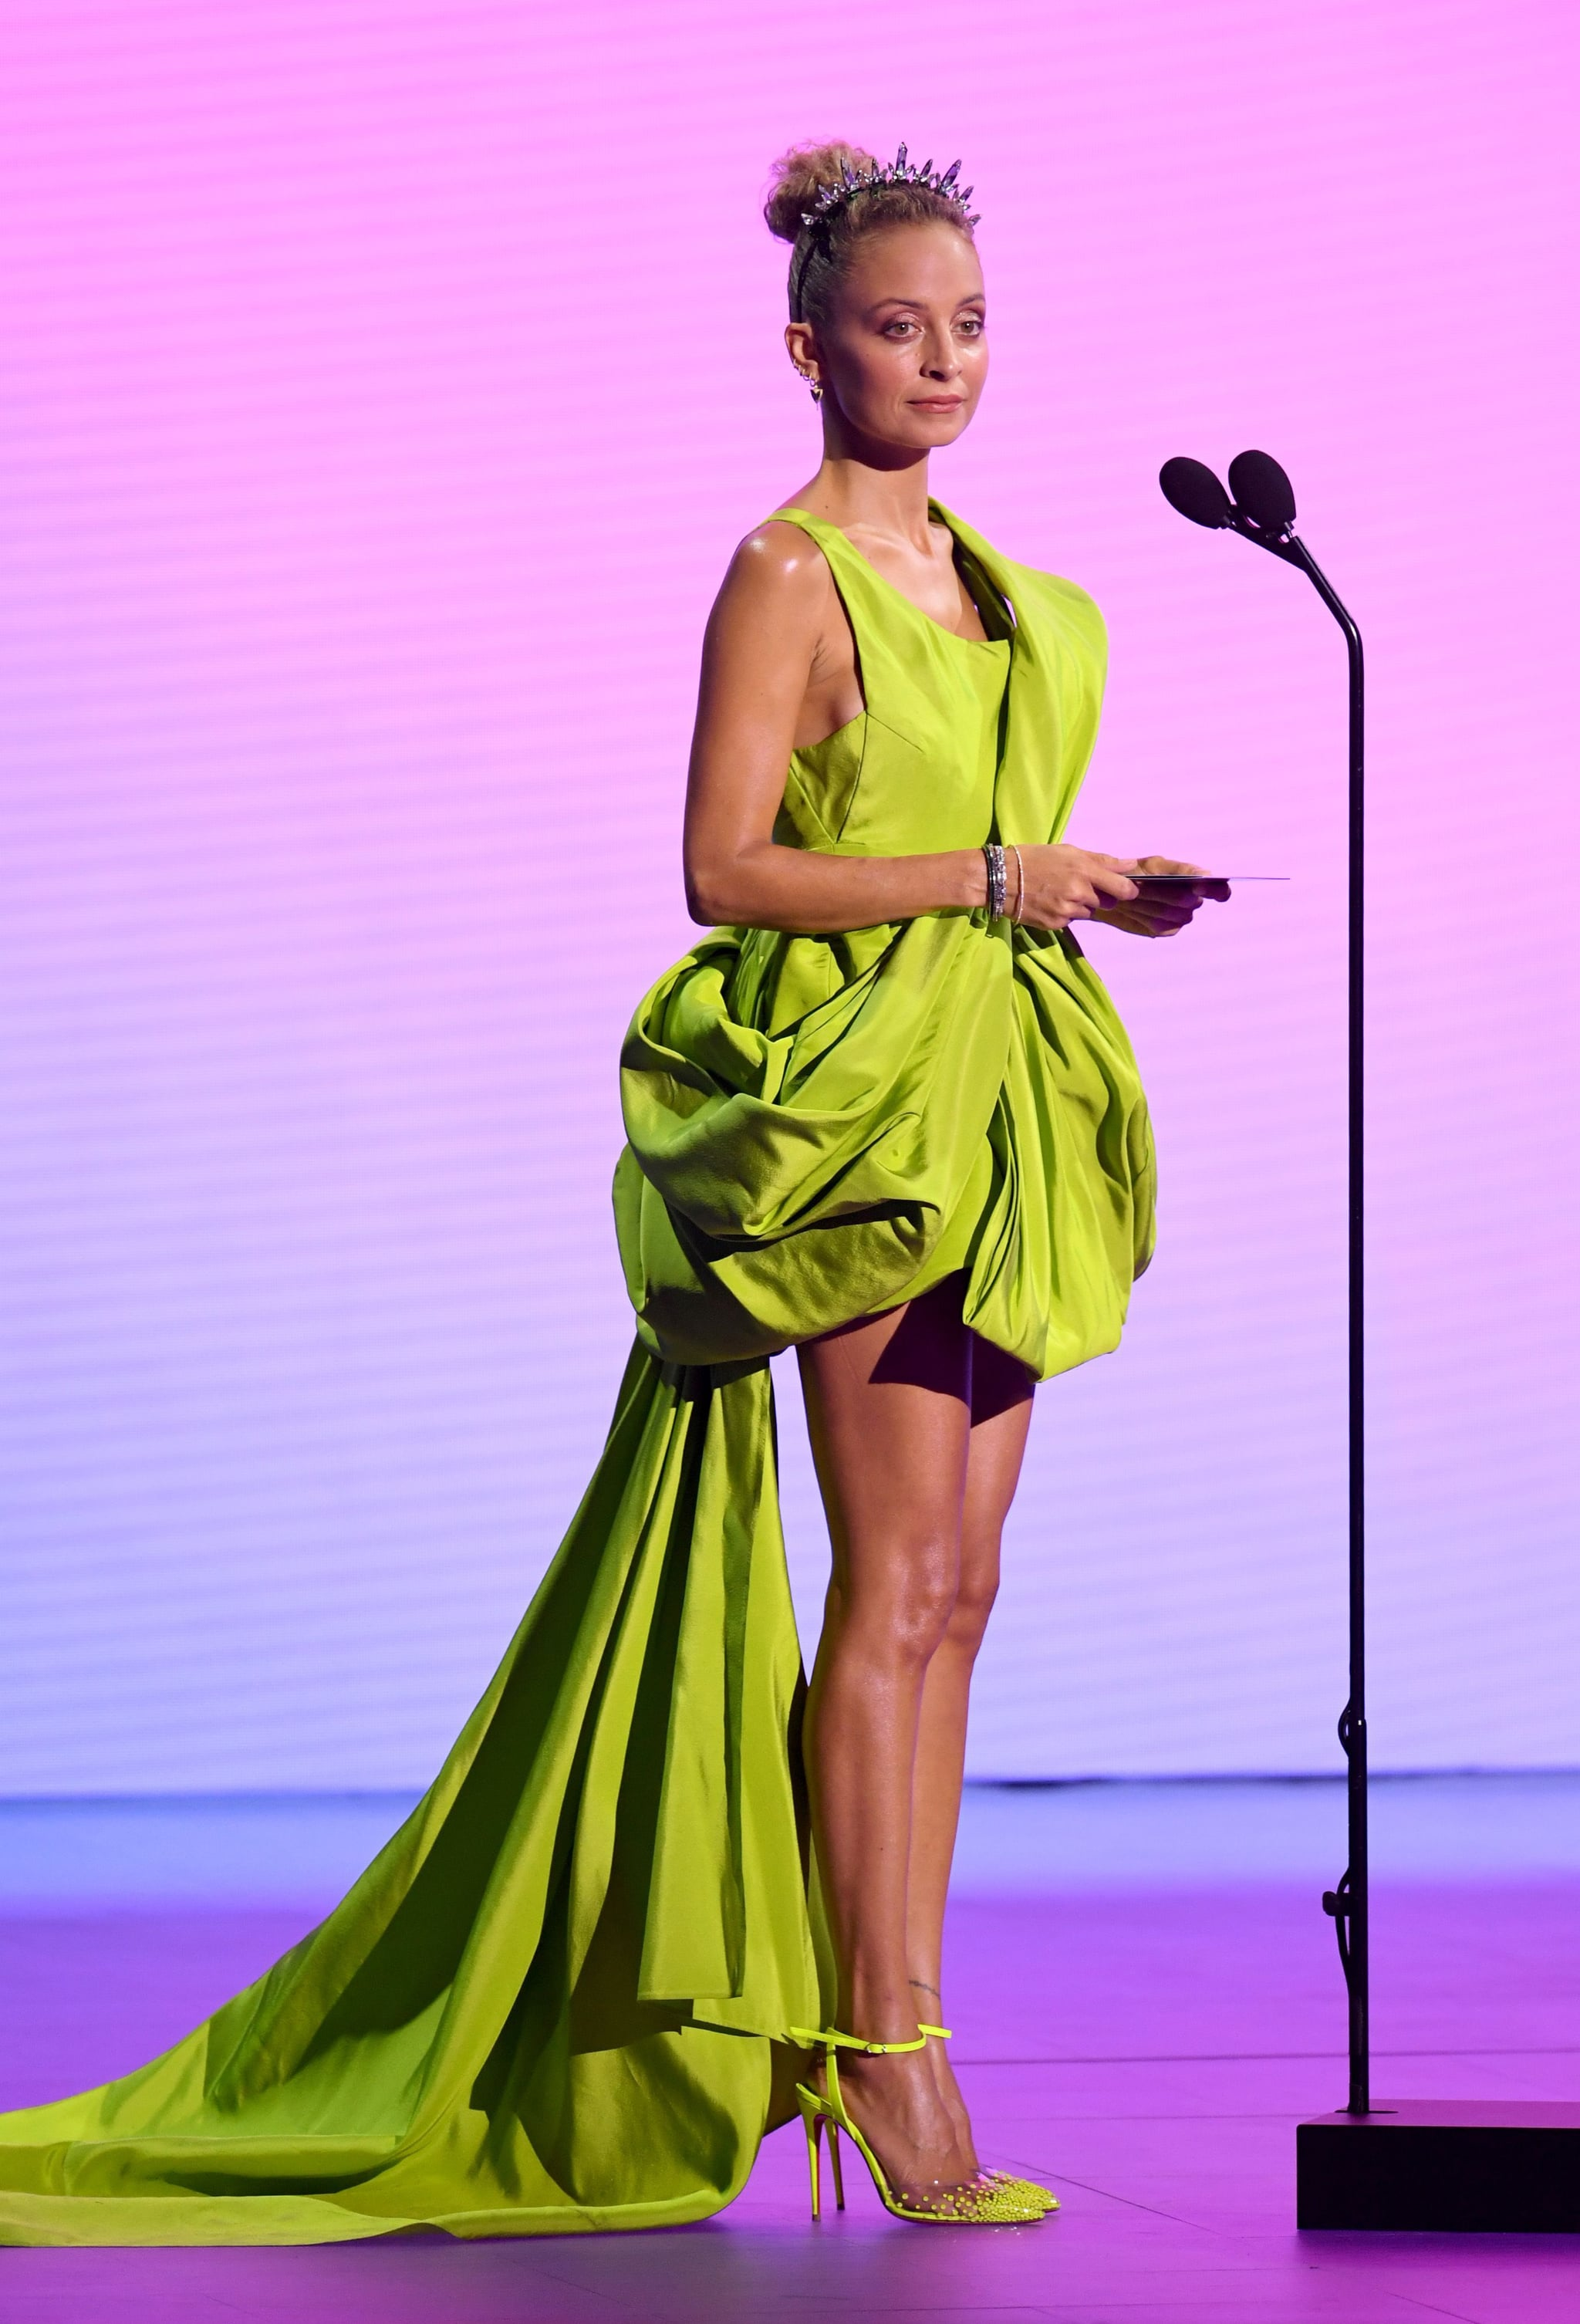 Nicole Richie at the 2020 MTV VMAs | Get a Front Row Seat to the 2020 MTV  VMAs With These 47 Photos | POPSUGAR Celebrity Photo 5